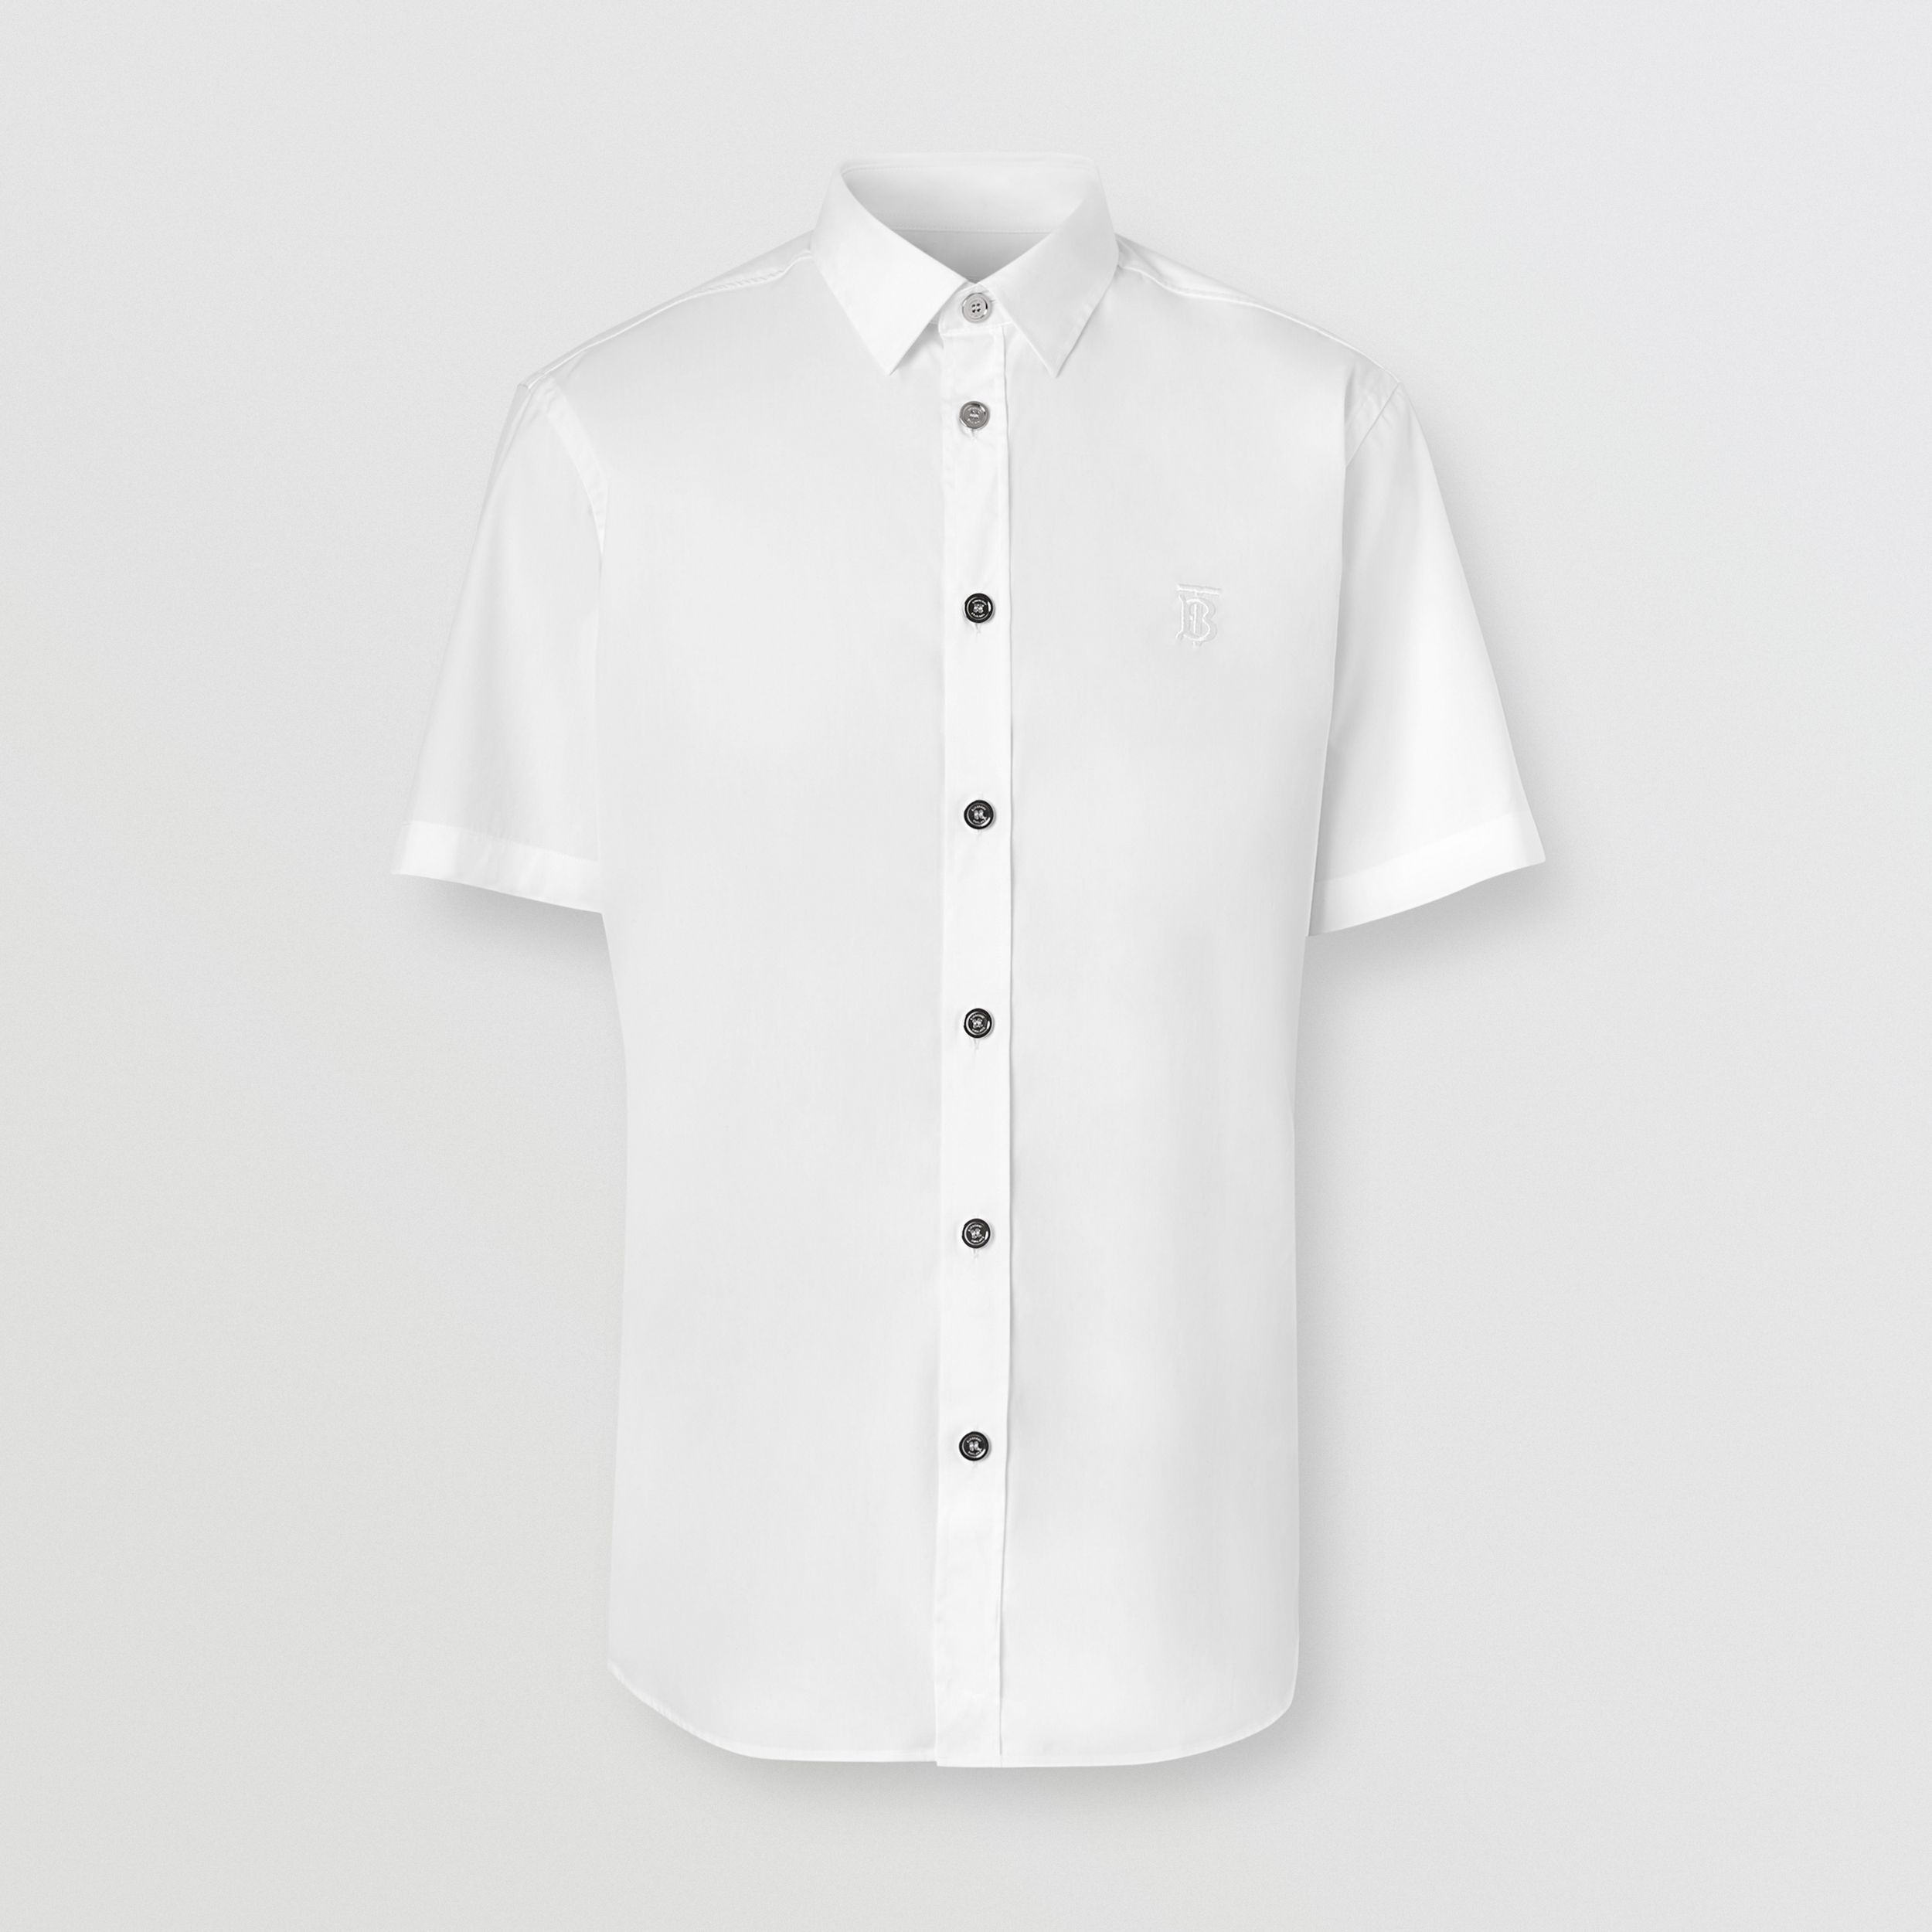 Short-sleeve Monogram Motif Stretch Cotton Shirt in White - Men | Burberry Canada - 4